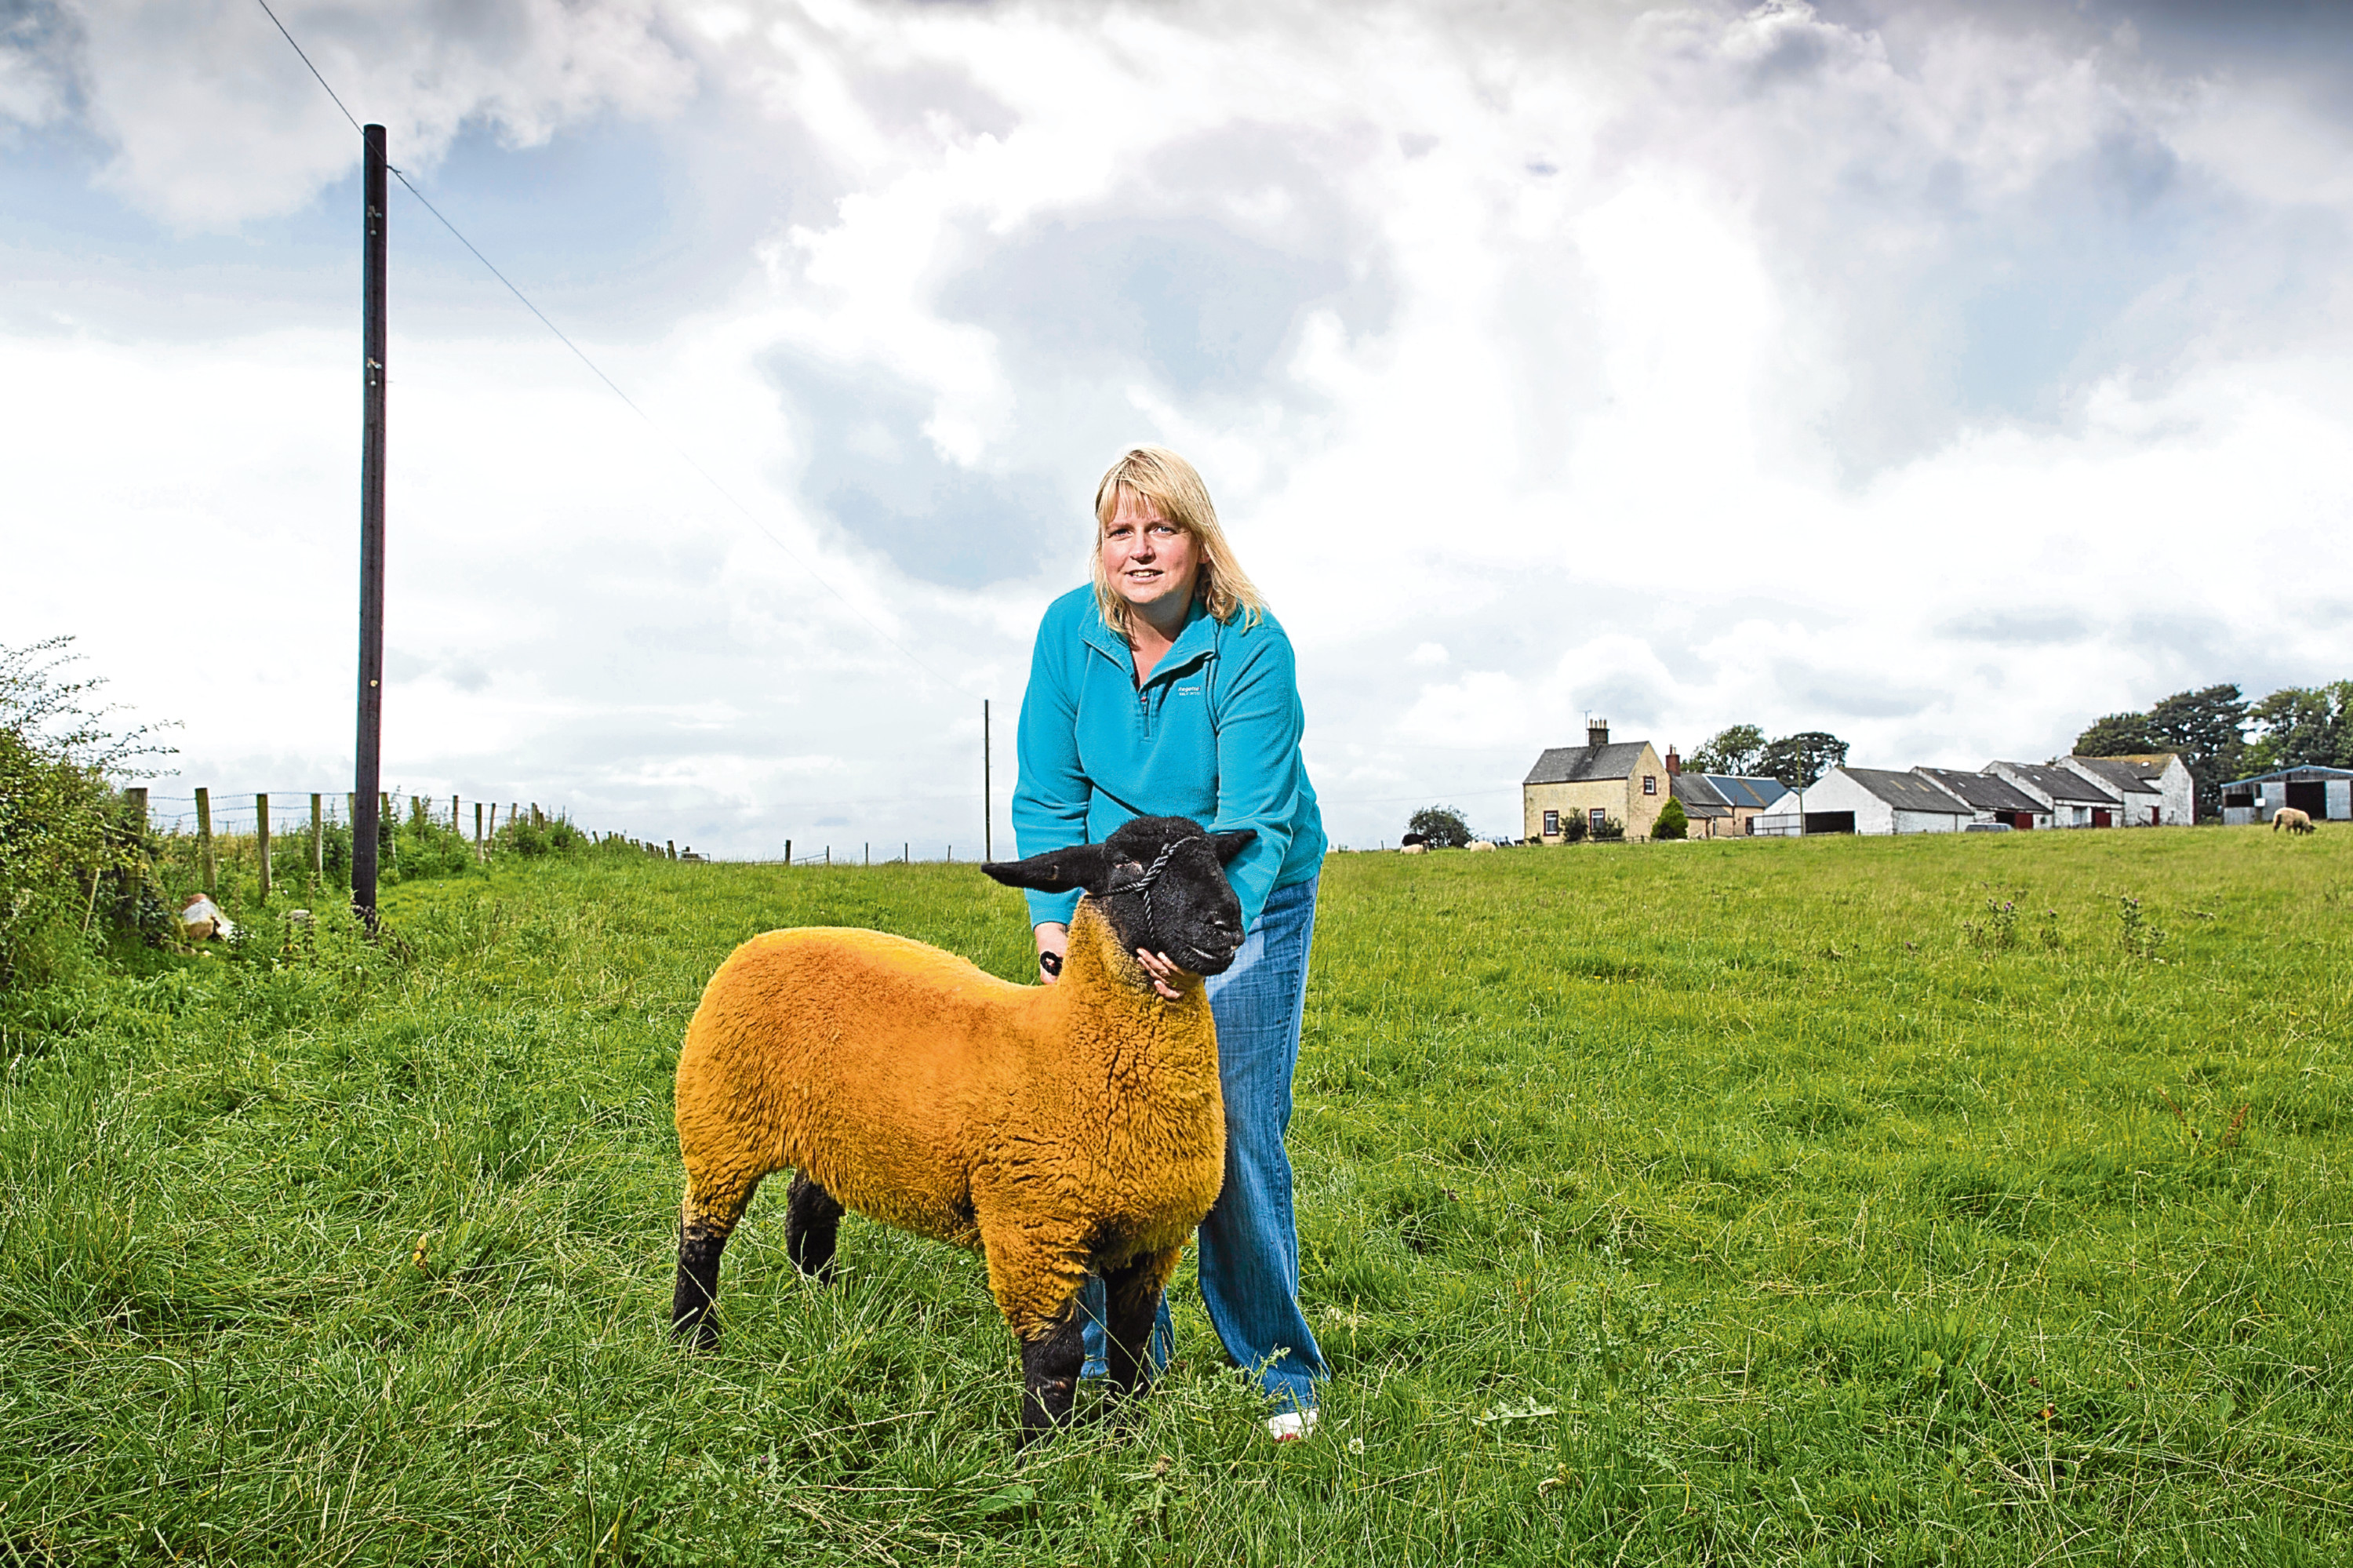 Paula Neil a Suffolk sheep breeder from Mouswalk Dumfries and Galloway had to fight with BT to get a telegraph pole erected after it lay for 7 months with the cable going across one of her fields causing a sheep to get tangled in the cable (Jamie Williamson)